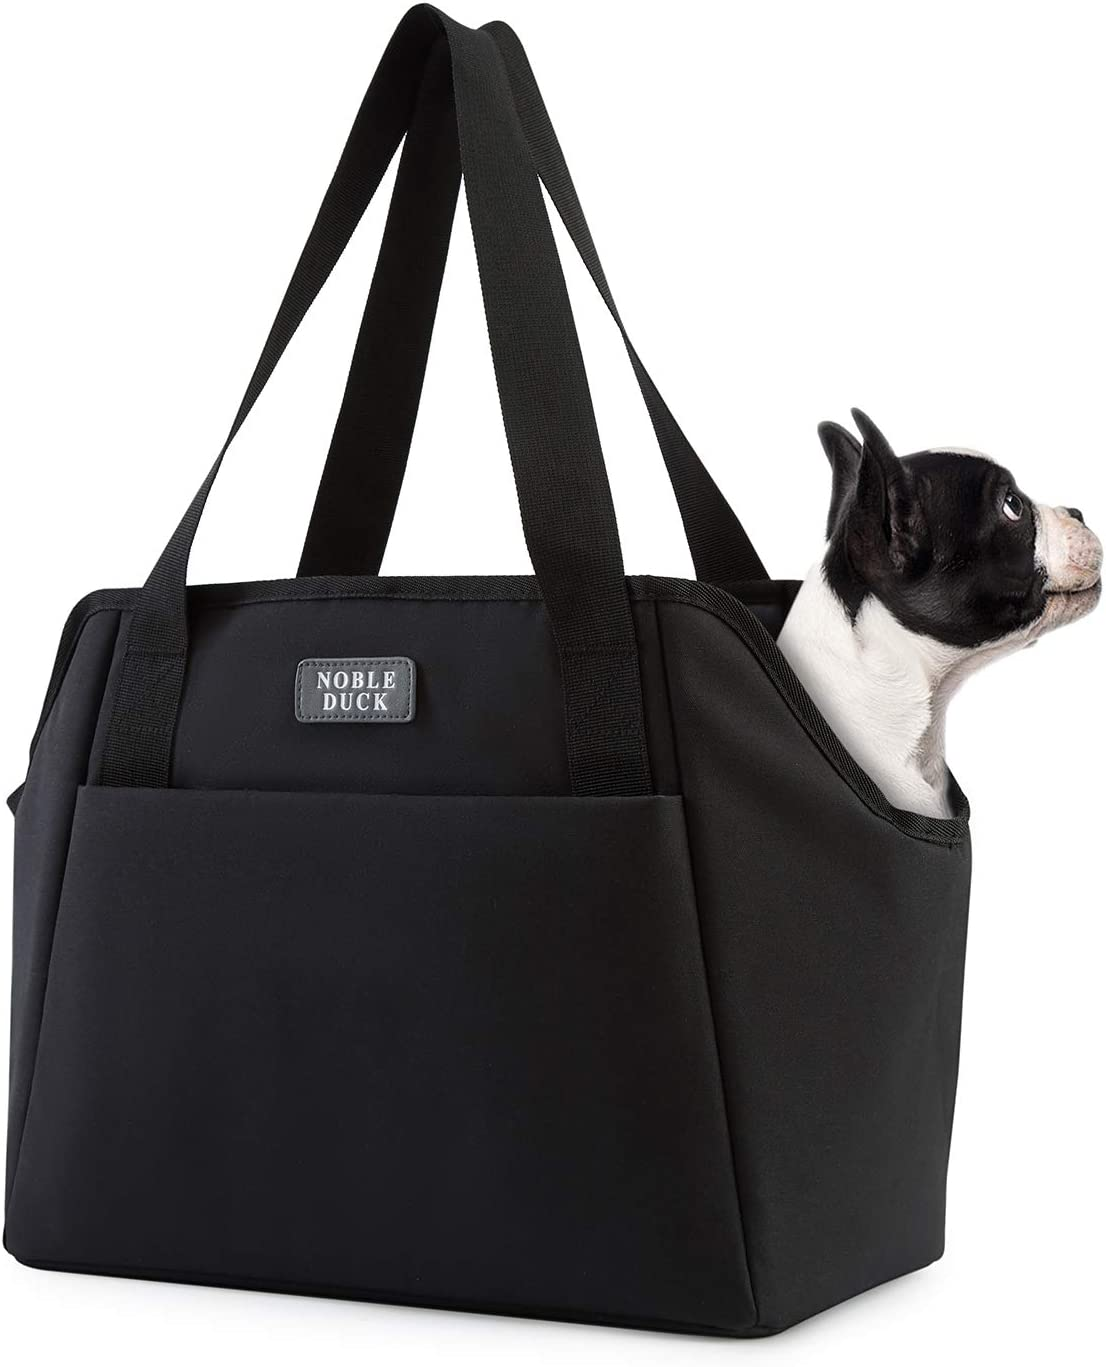 NOBLE DUCK Dog Carrier Purse